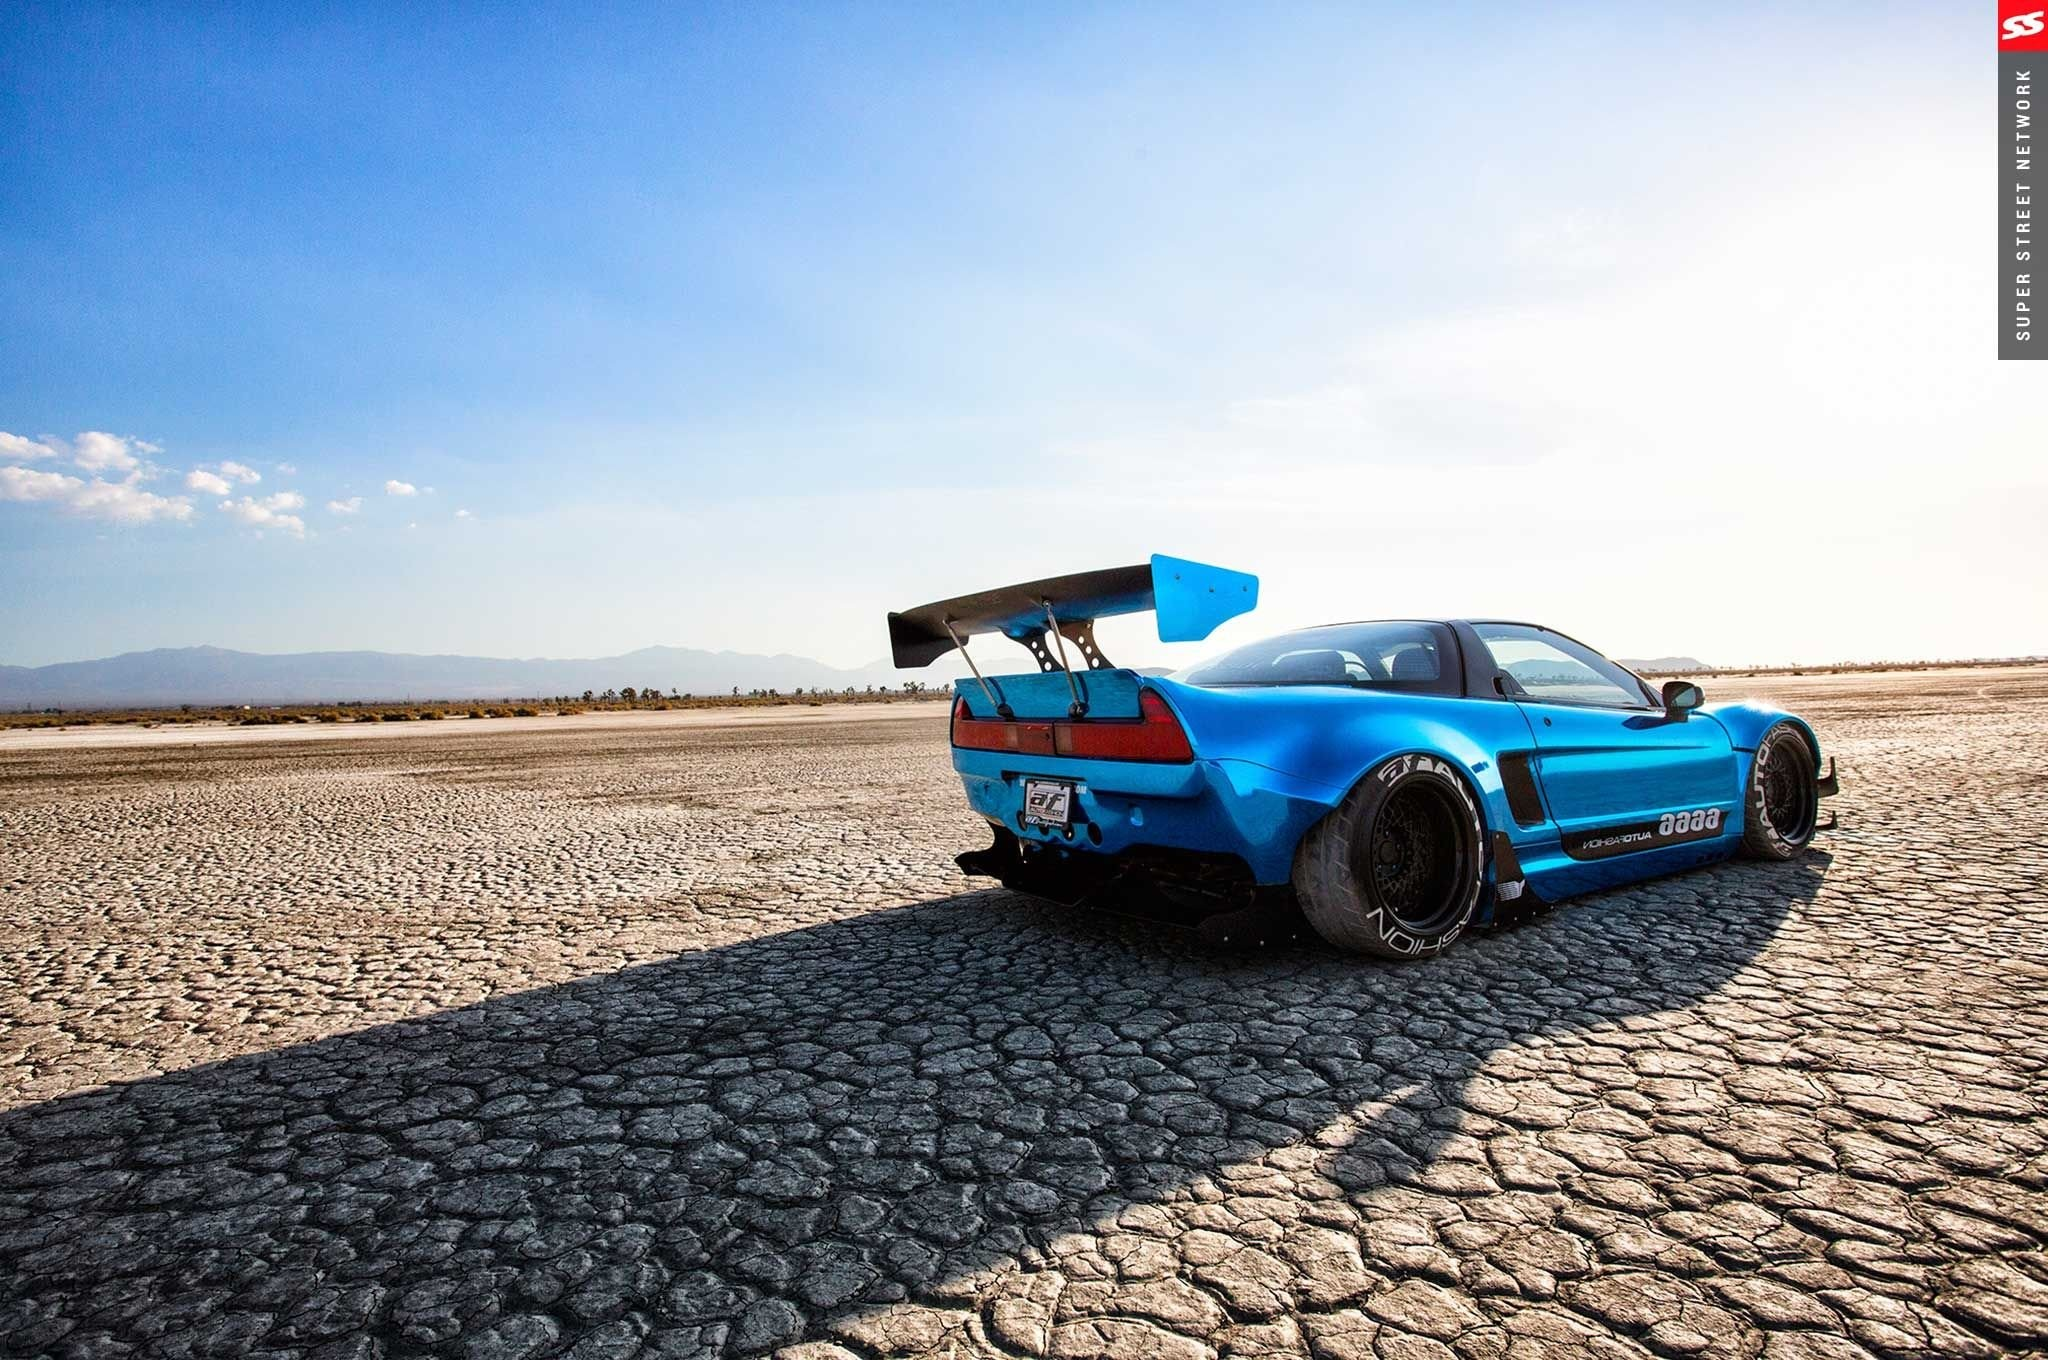 2048x1360 1992 acura nsx rocket bunny cars coupe modified blue wallpaper |   | 855630 | WallpaperUP